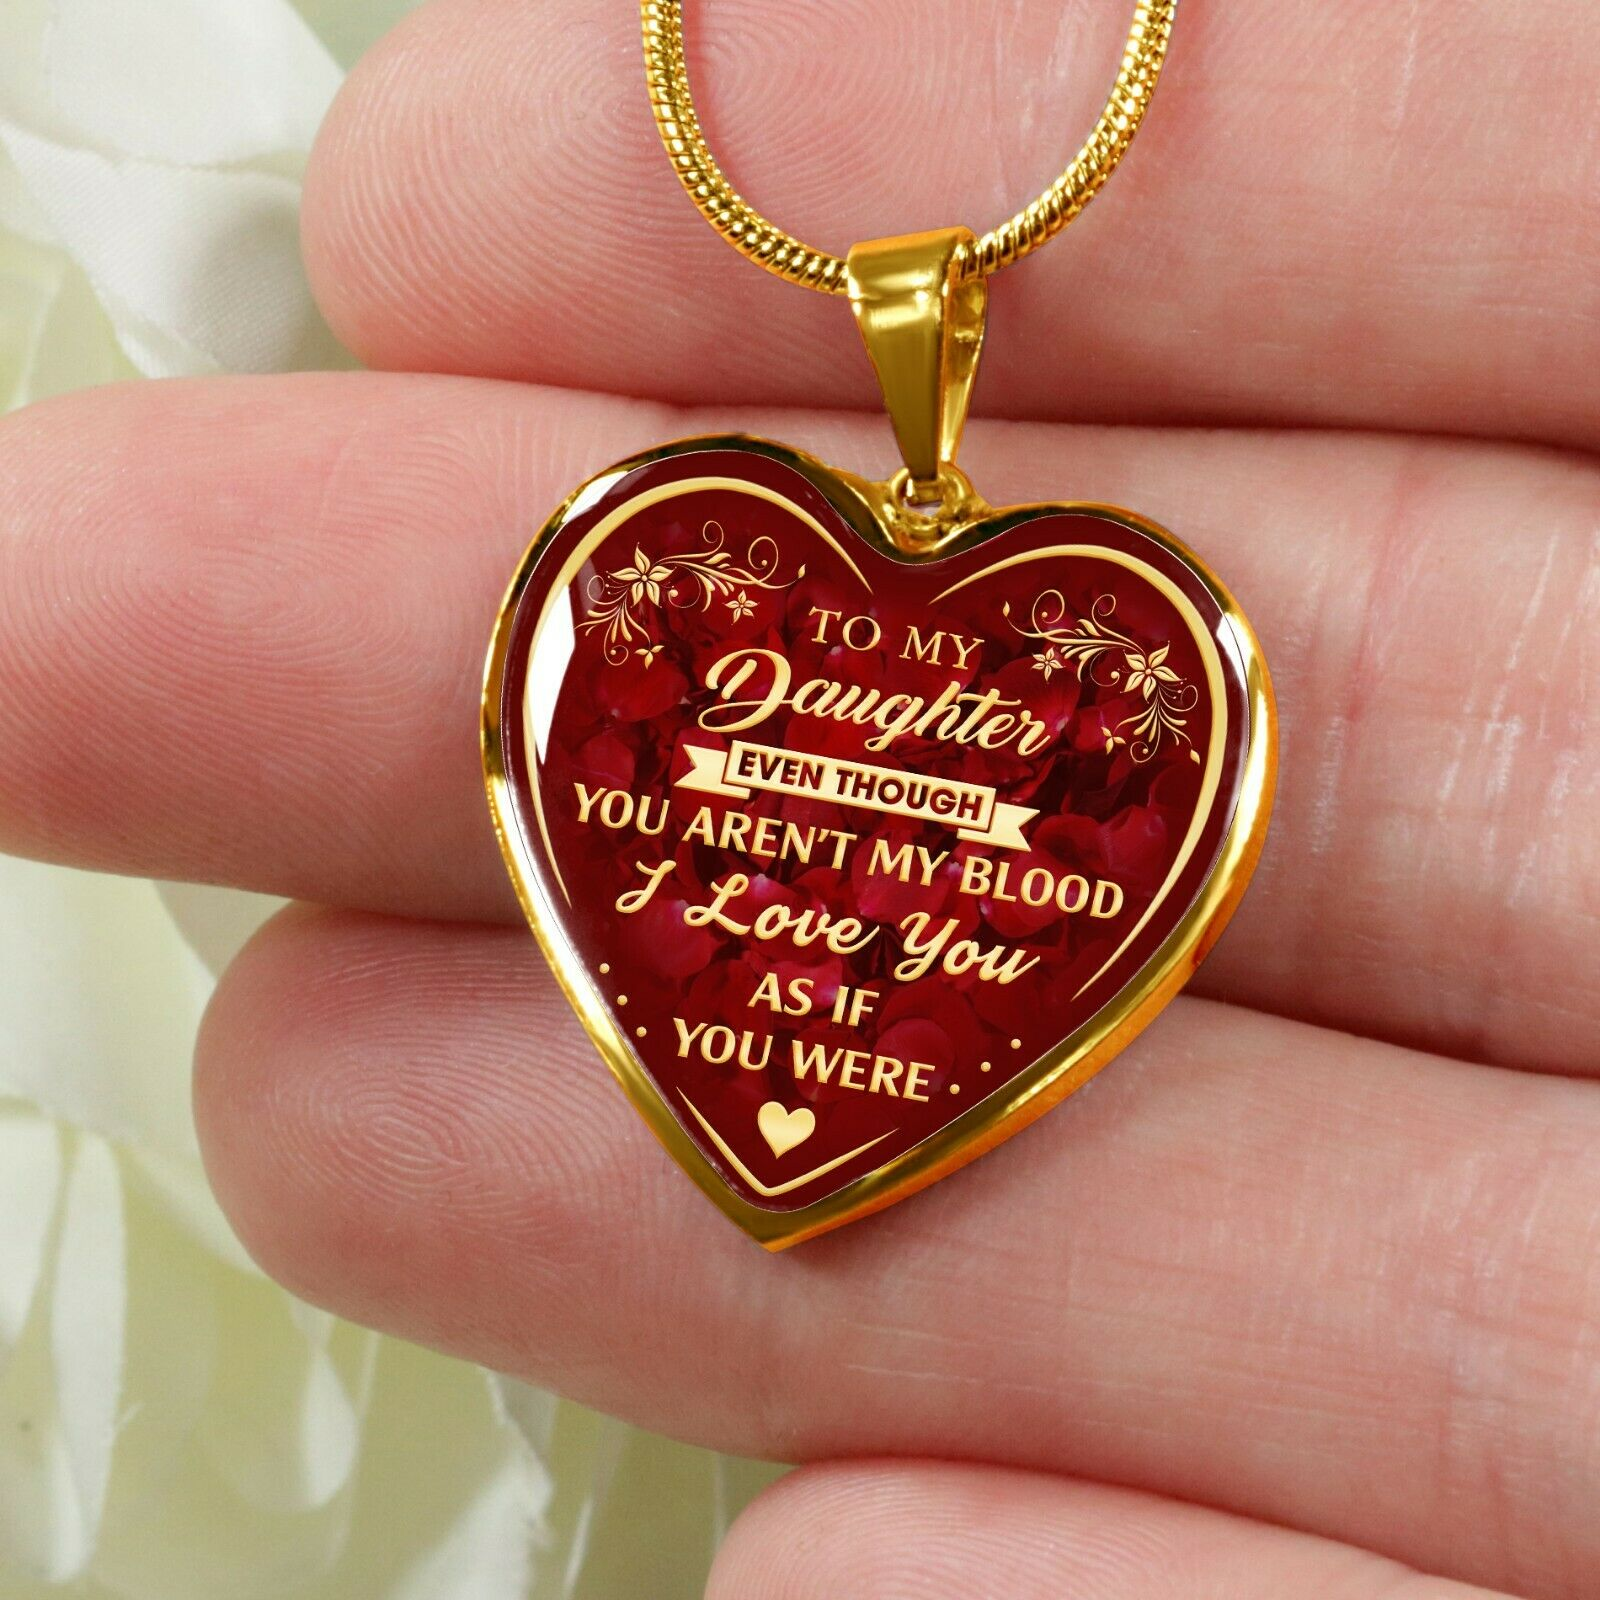 To My Daughter Necklace From Step Mom Dad - Step Daughter Ne